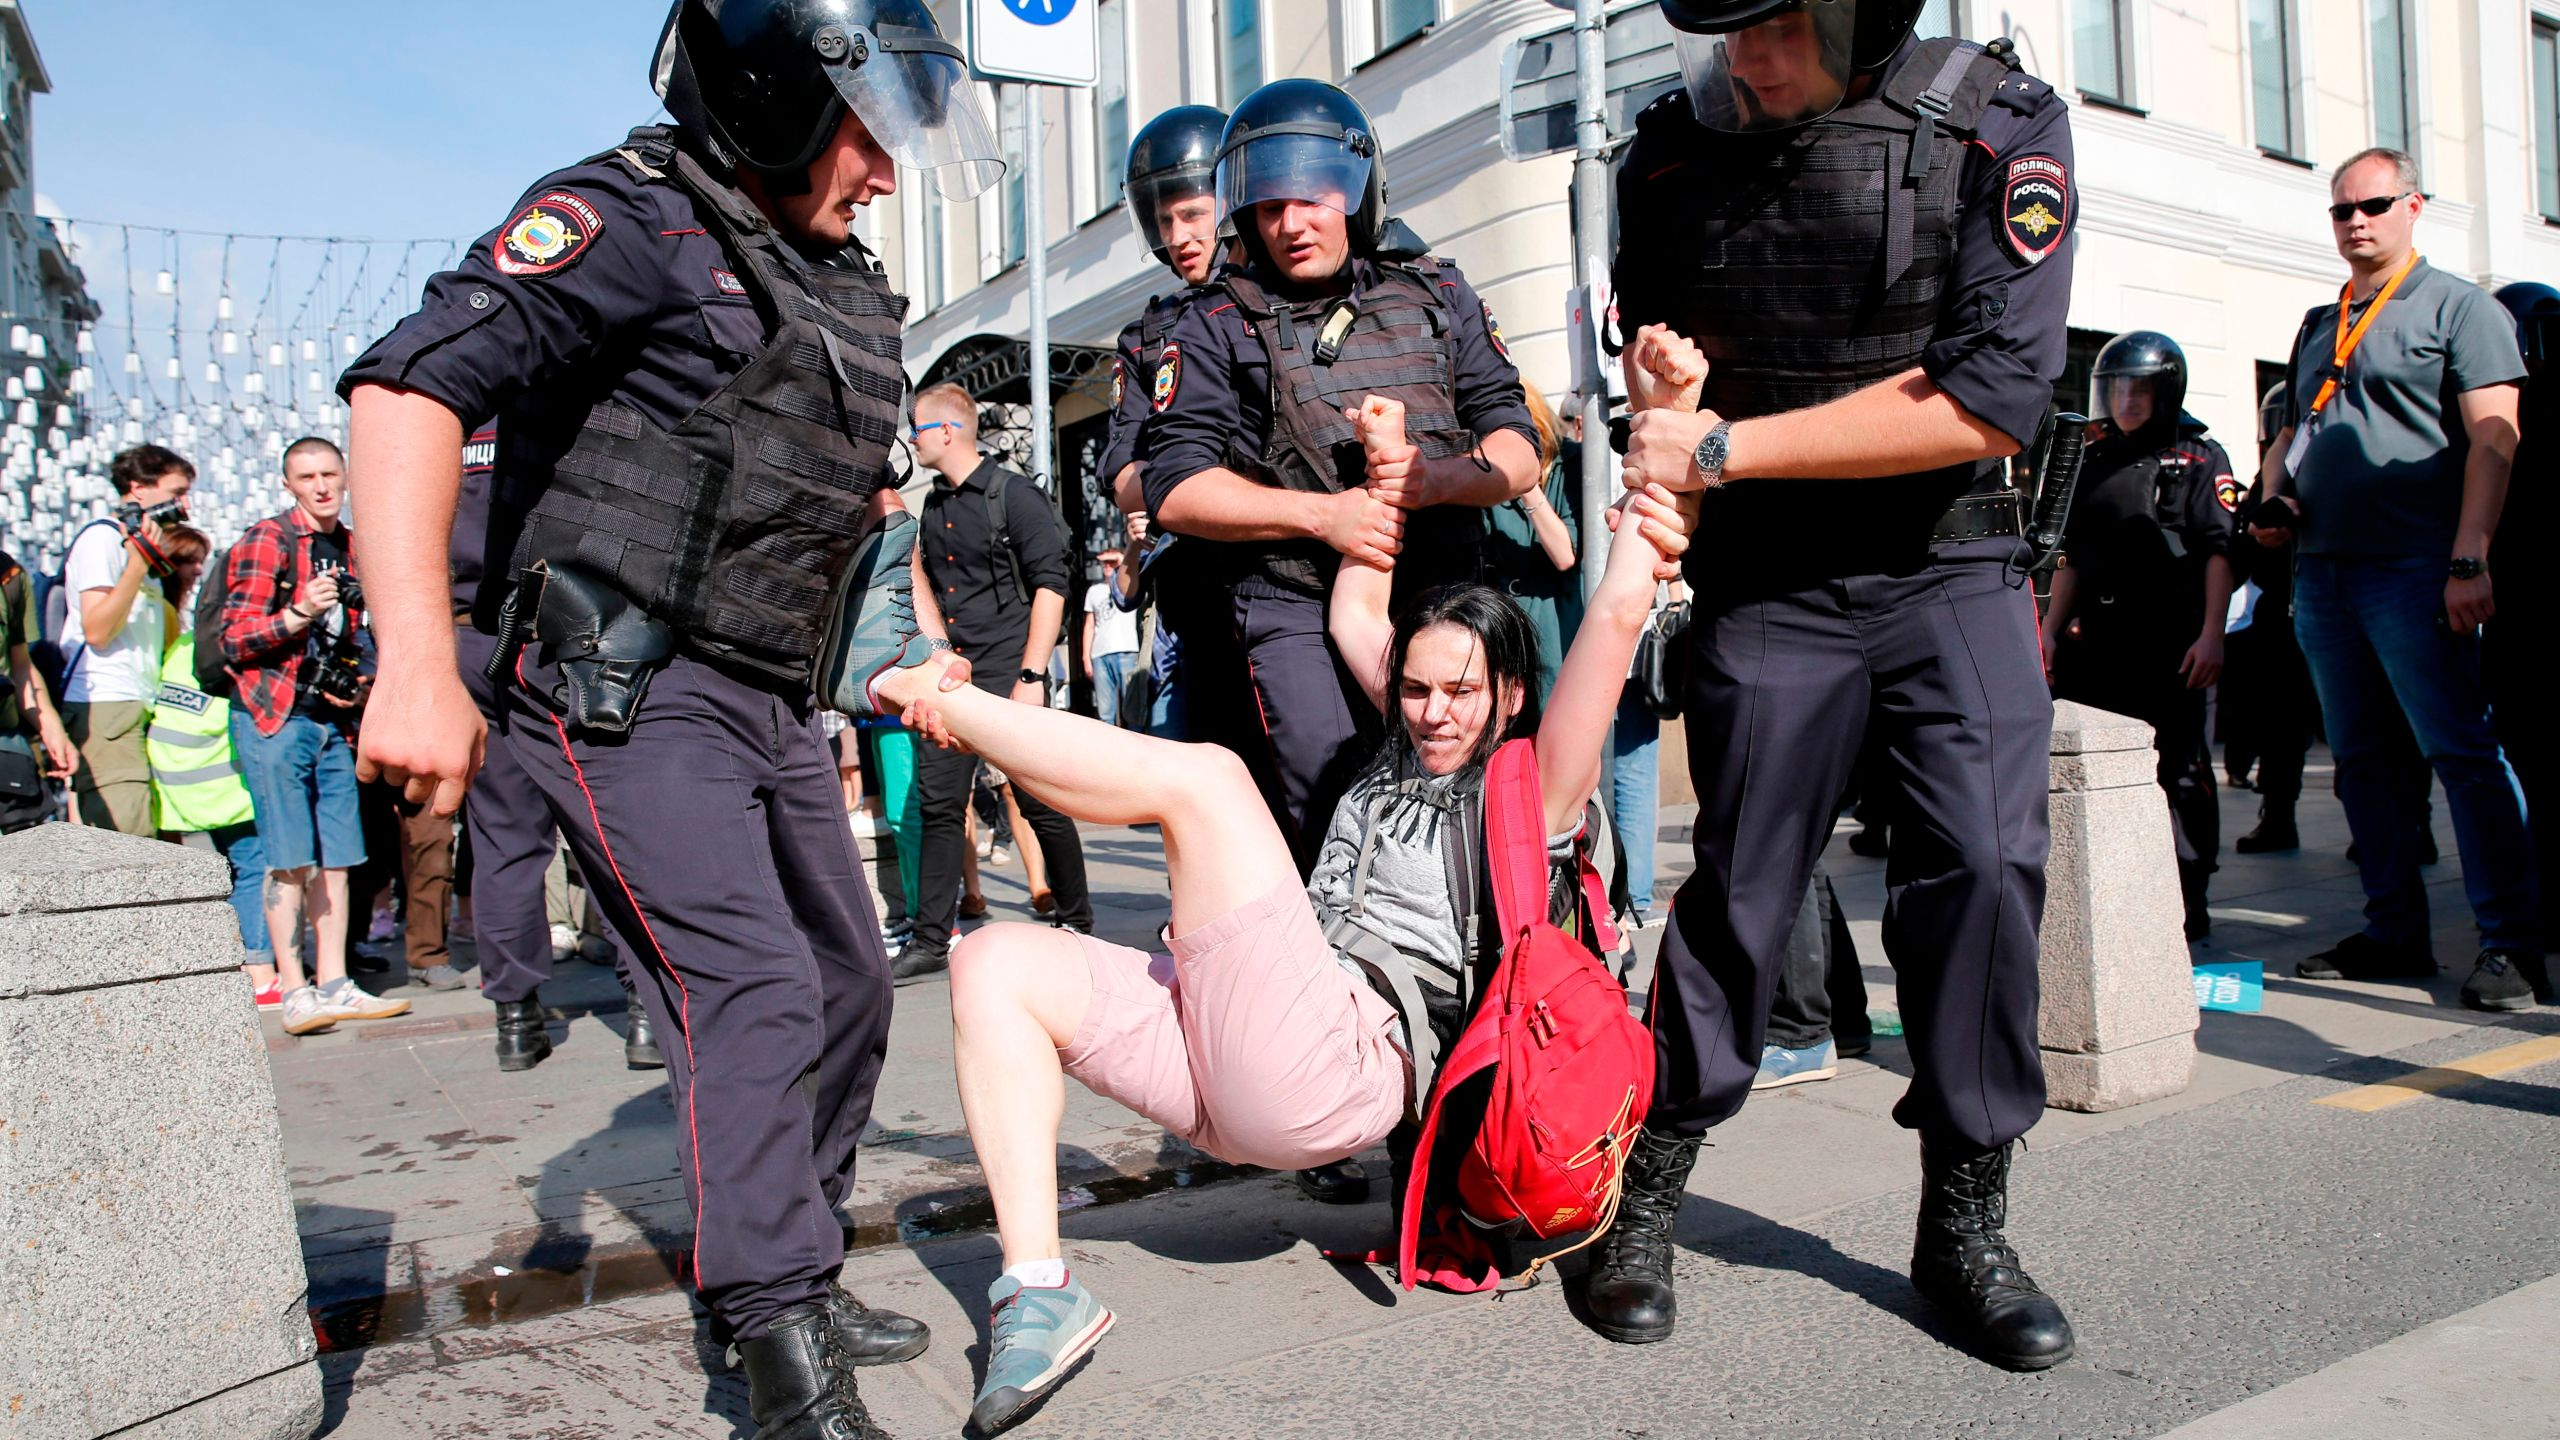 Police officers detain a protester during a rally in downtown Moscow on July 27, 2019. (Credit: Maxim Zmeyev/AFP/Getty Images)